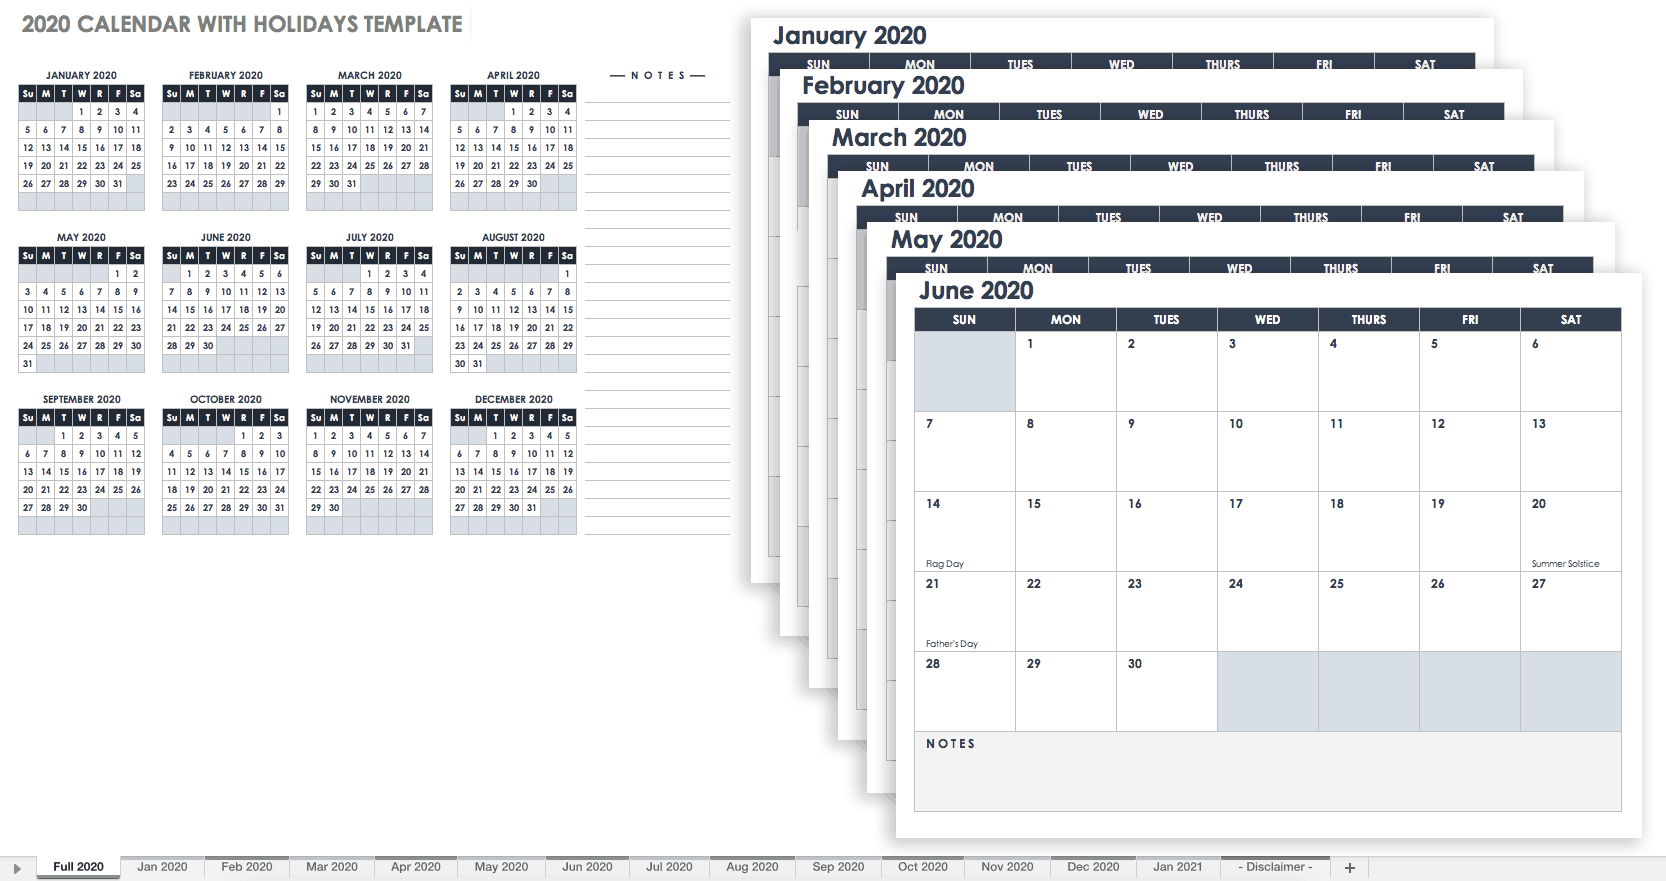 202 Calendar with Holidays Template Google